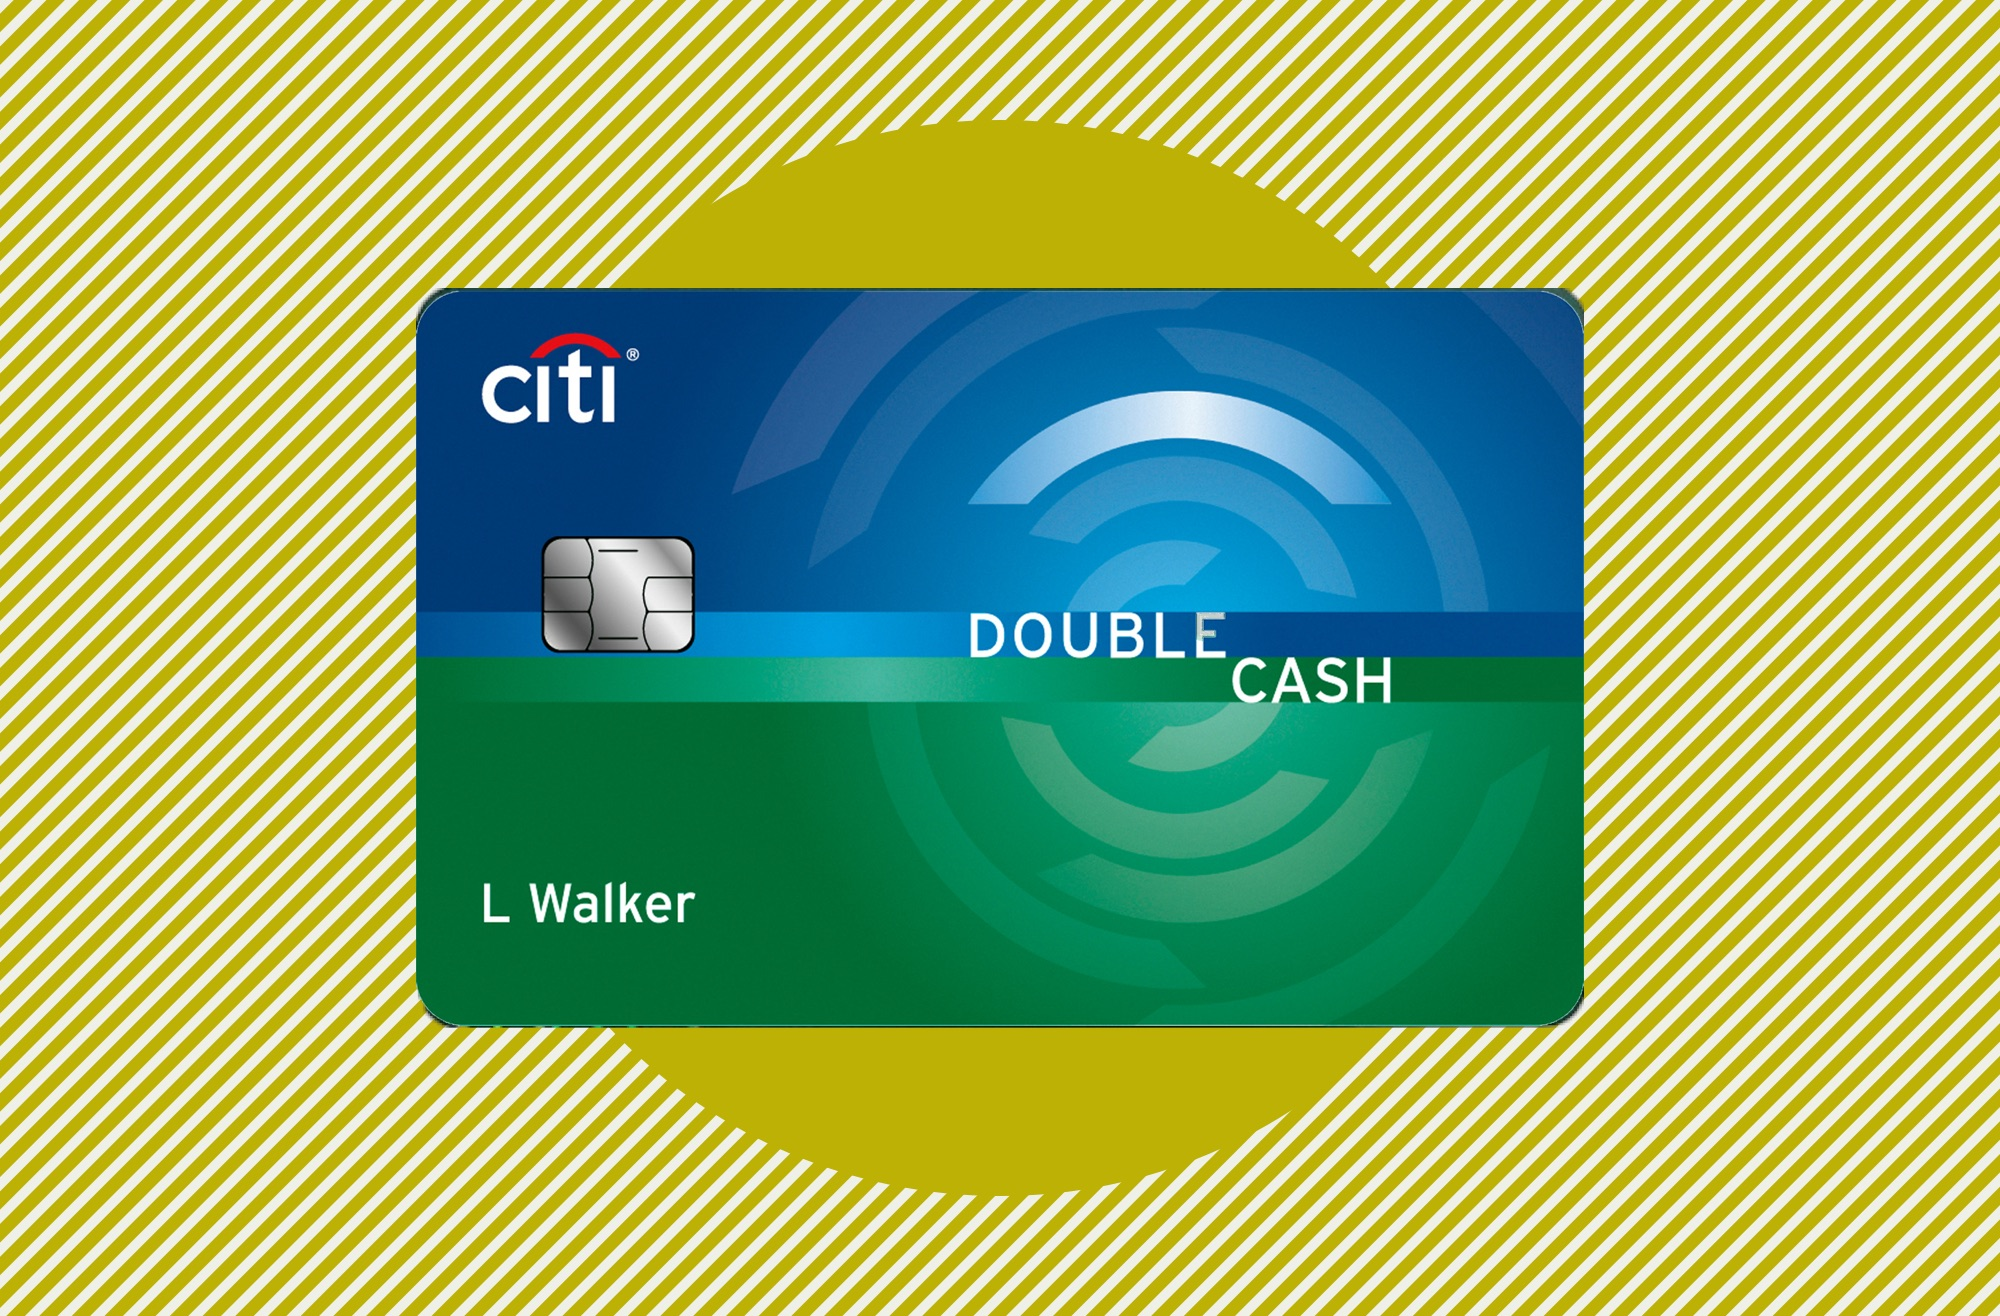 Citi Double Cash Card Review  NextAdvisor with TIME